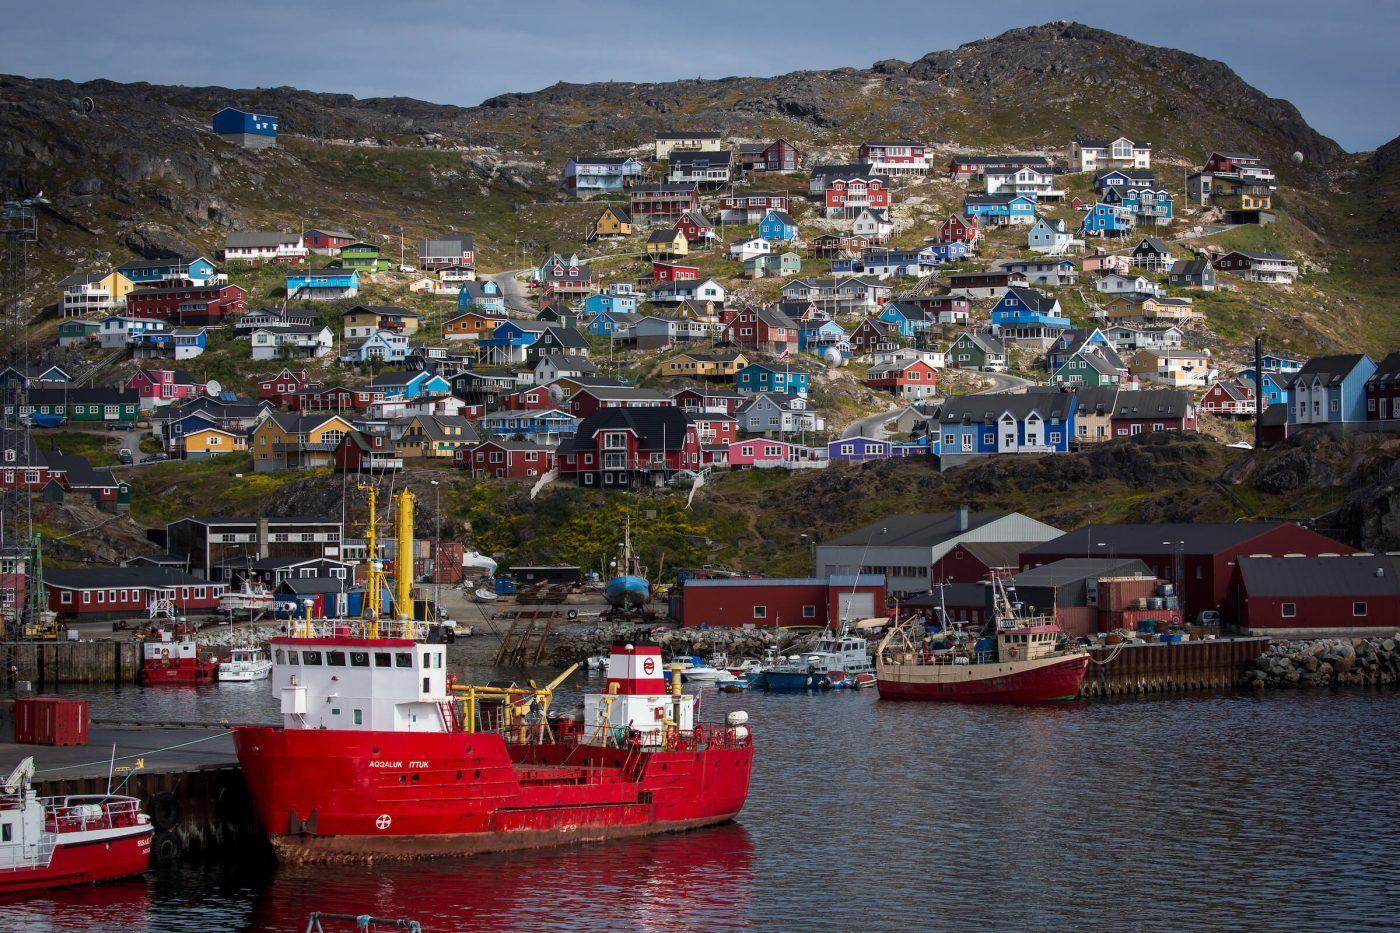 Qaqortoq is South Greenlands largest town and is built around a natural harbour shaped like a big amphitheatre